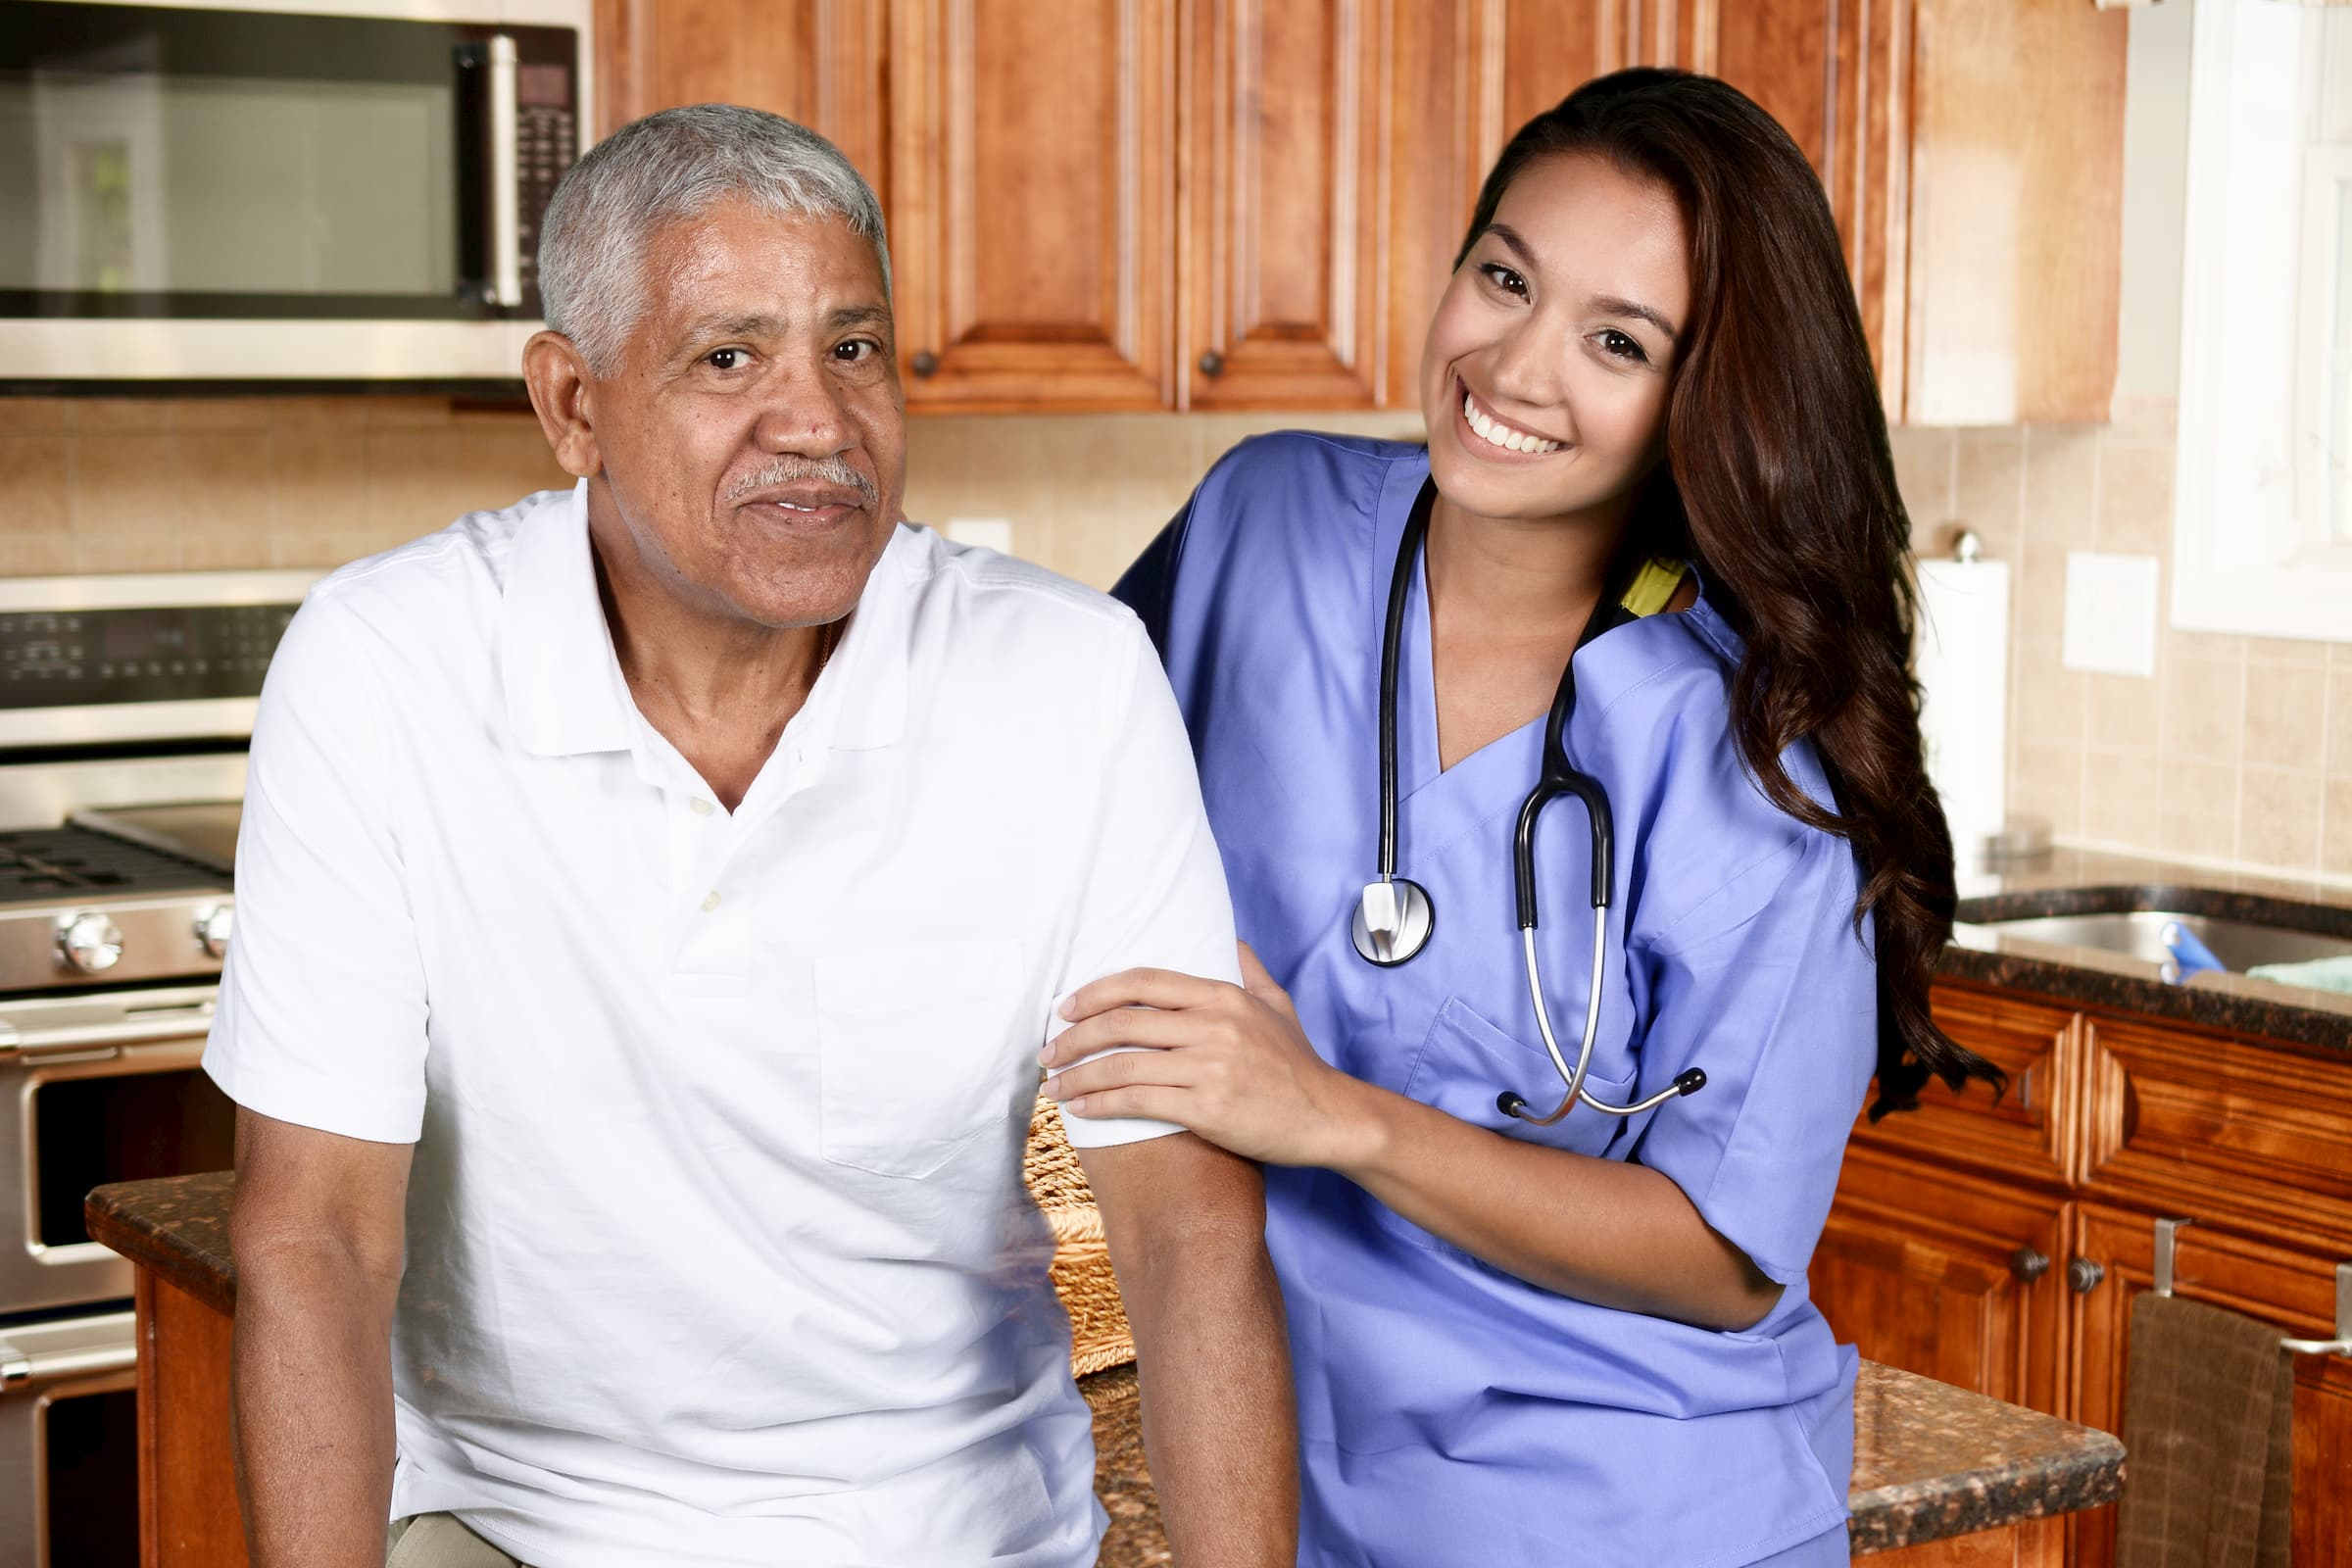 Home Health Care - NMC Health